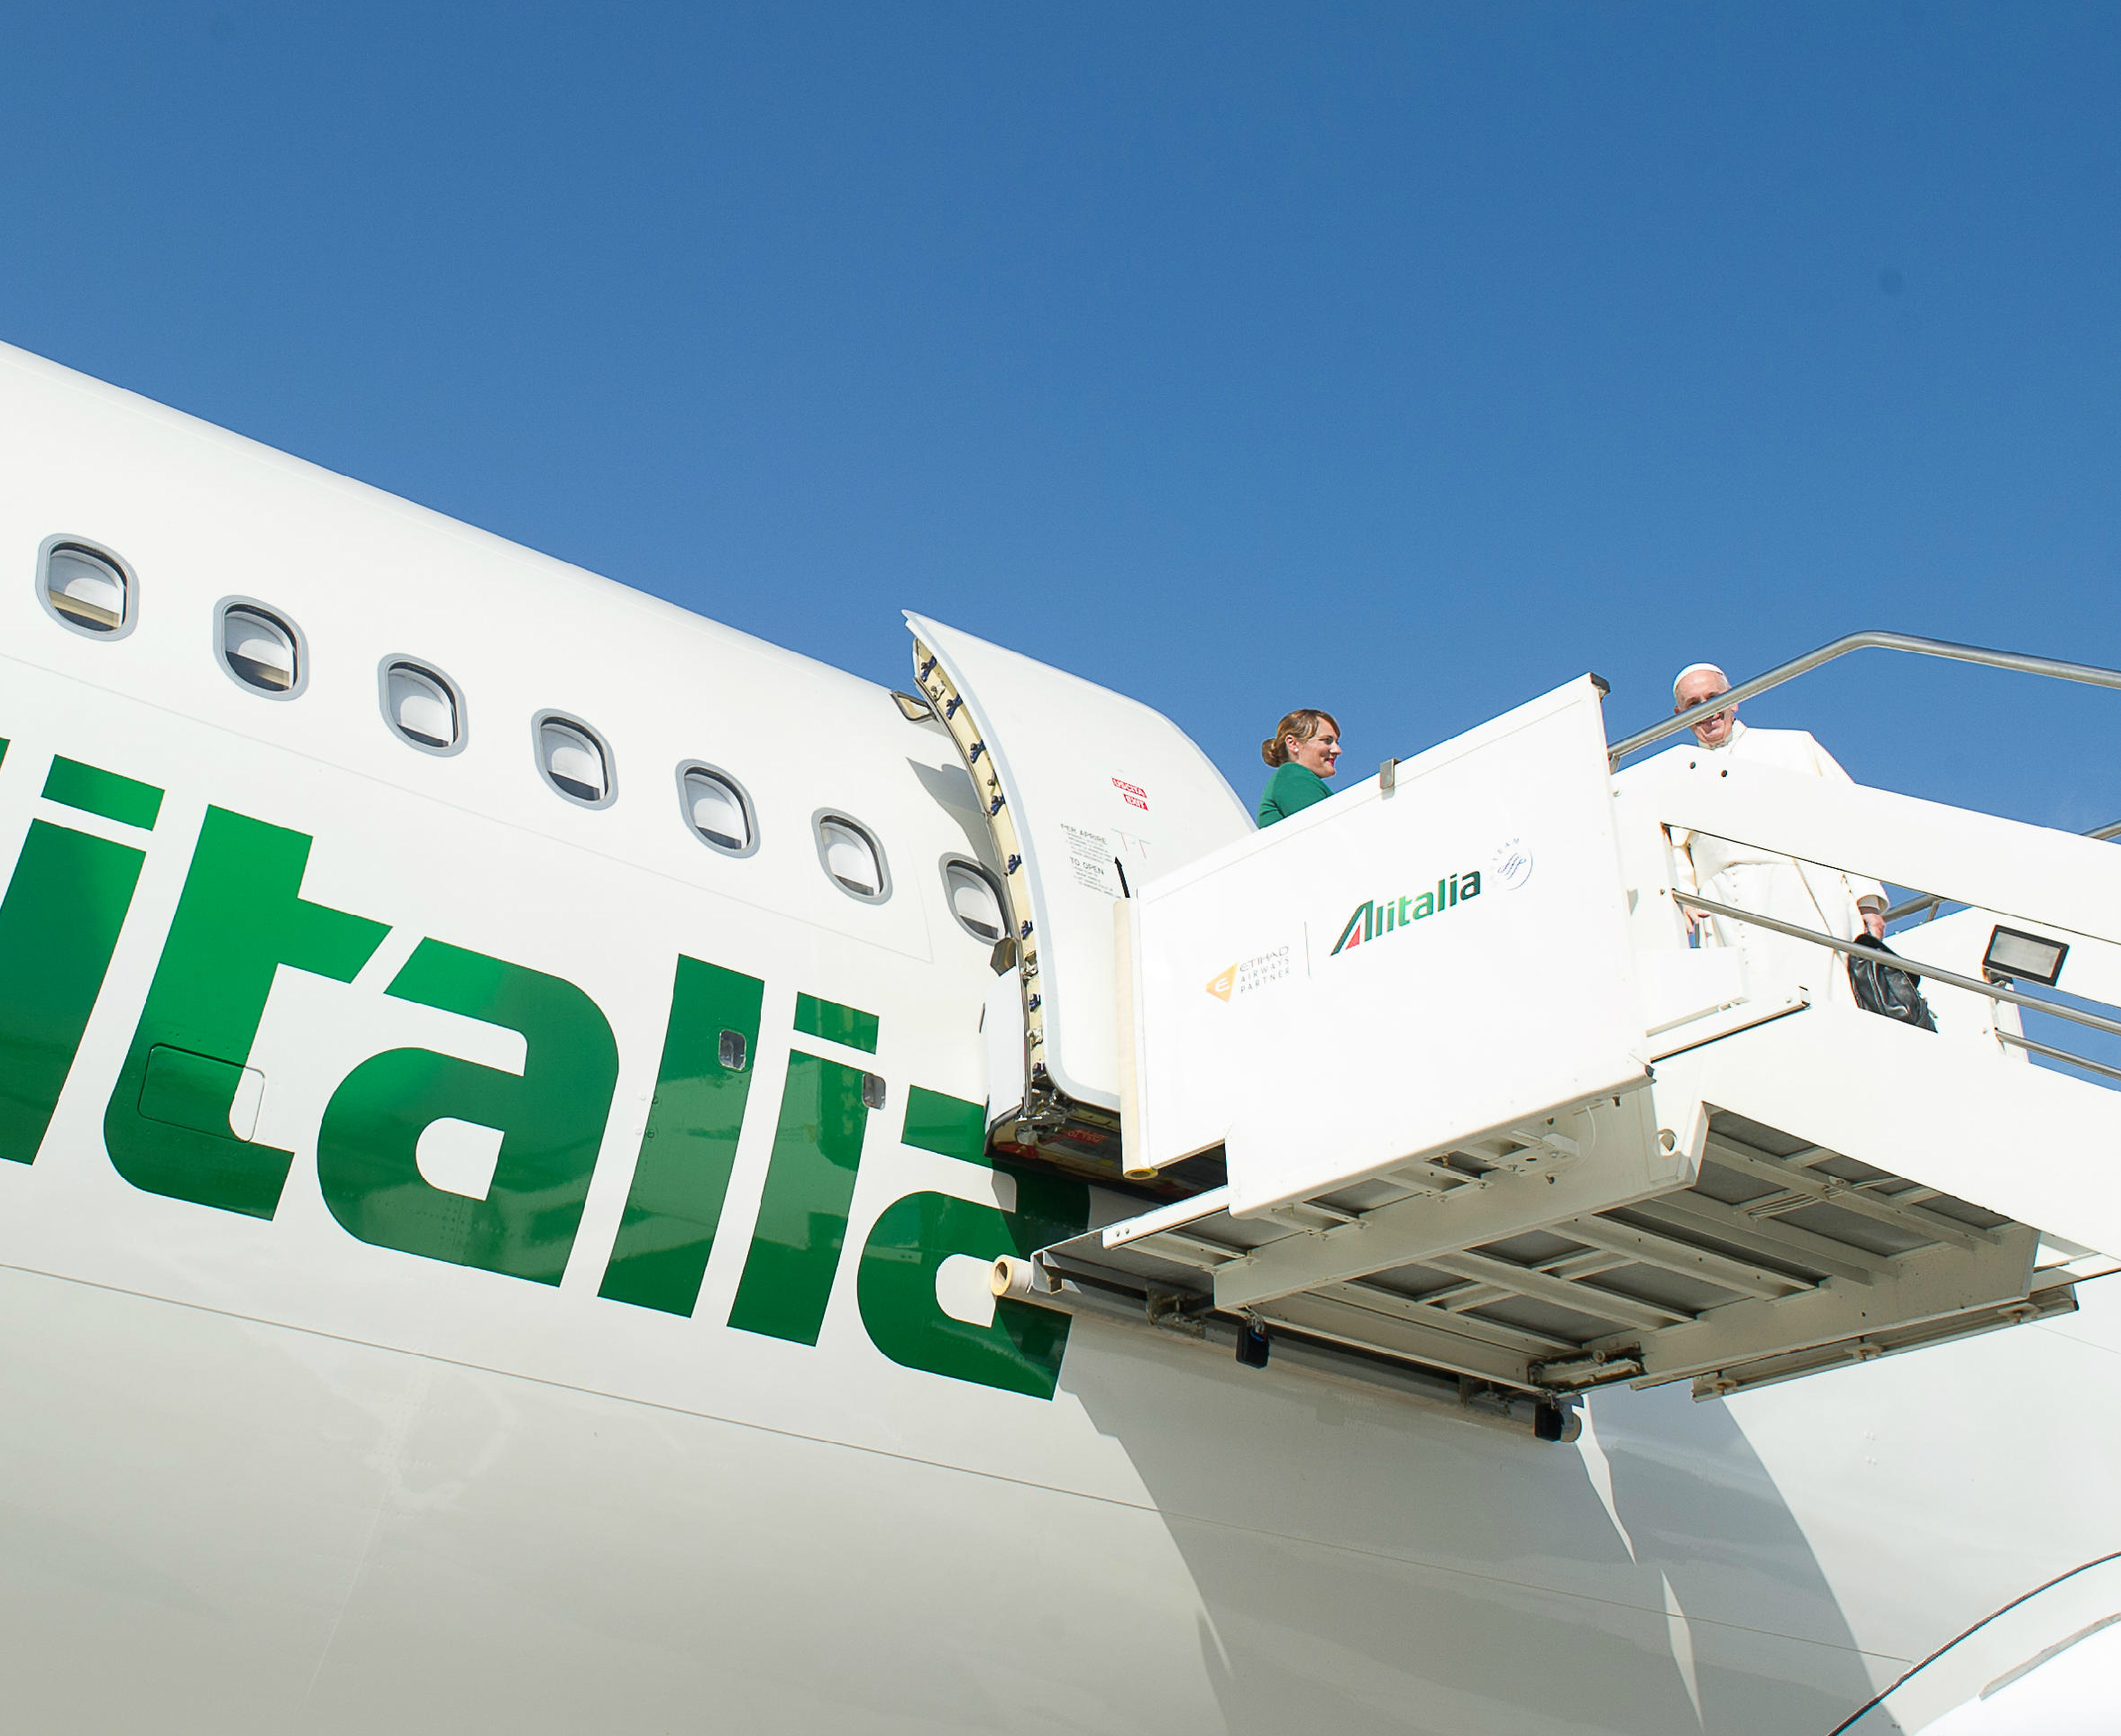 Pope Francis on the Alitalia plane